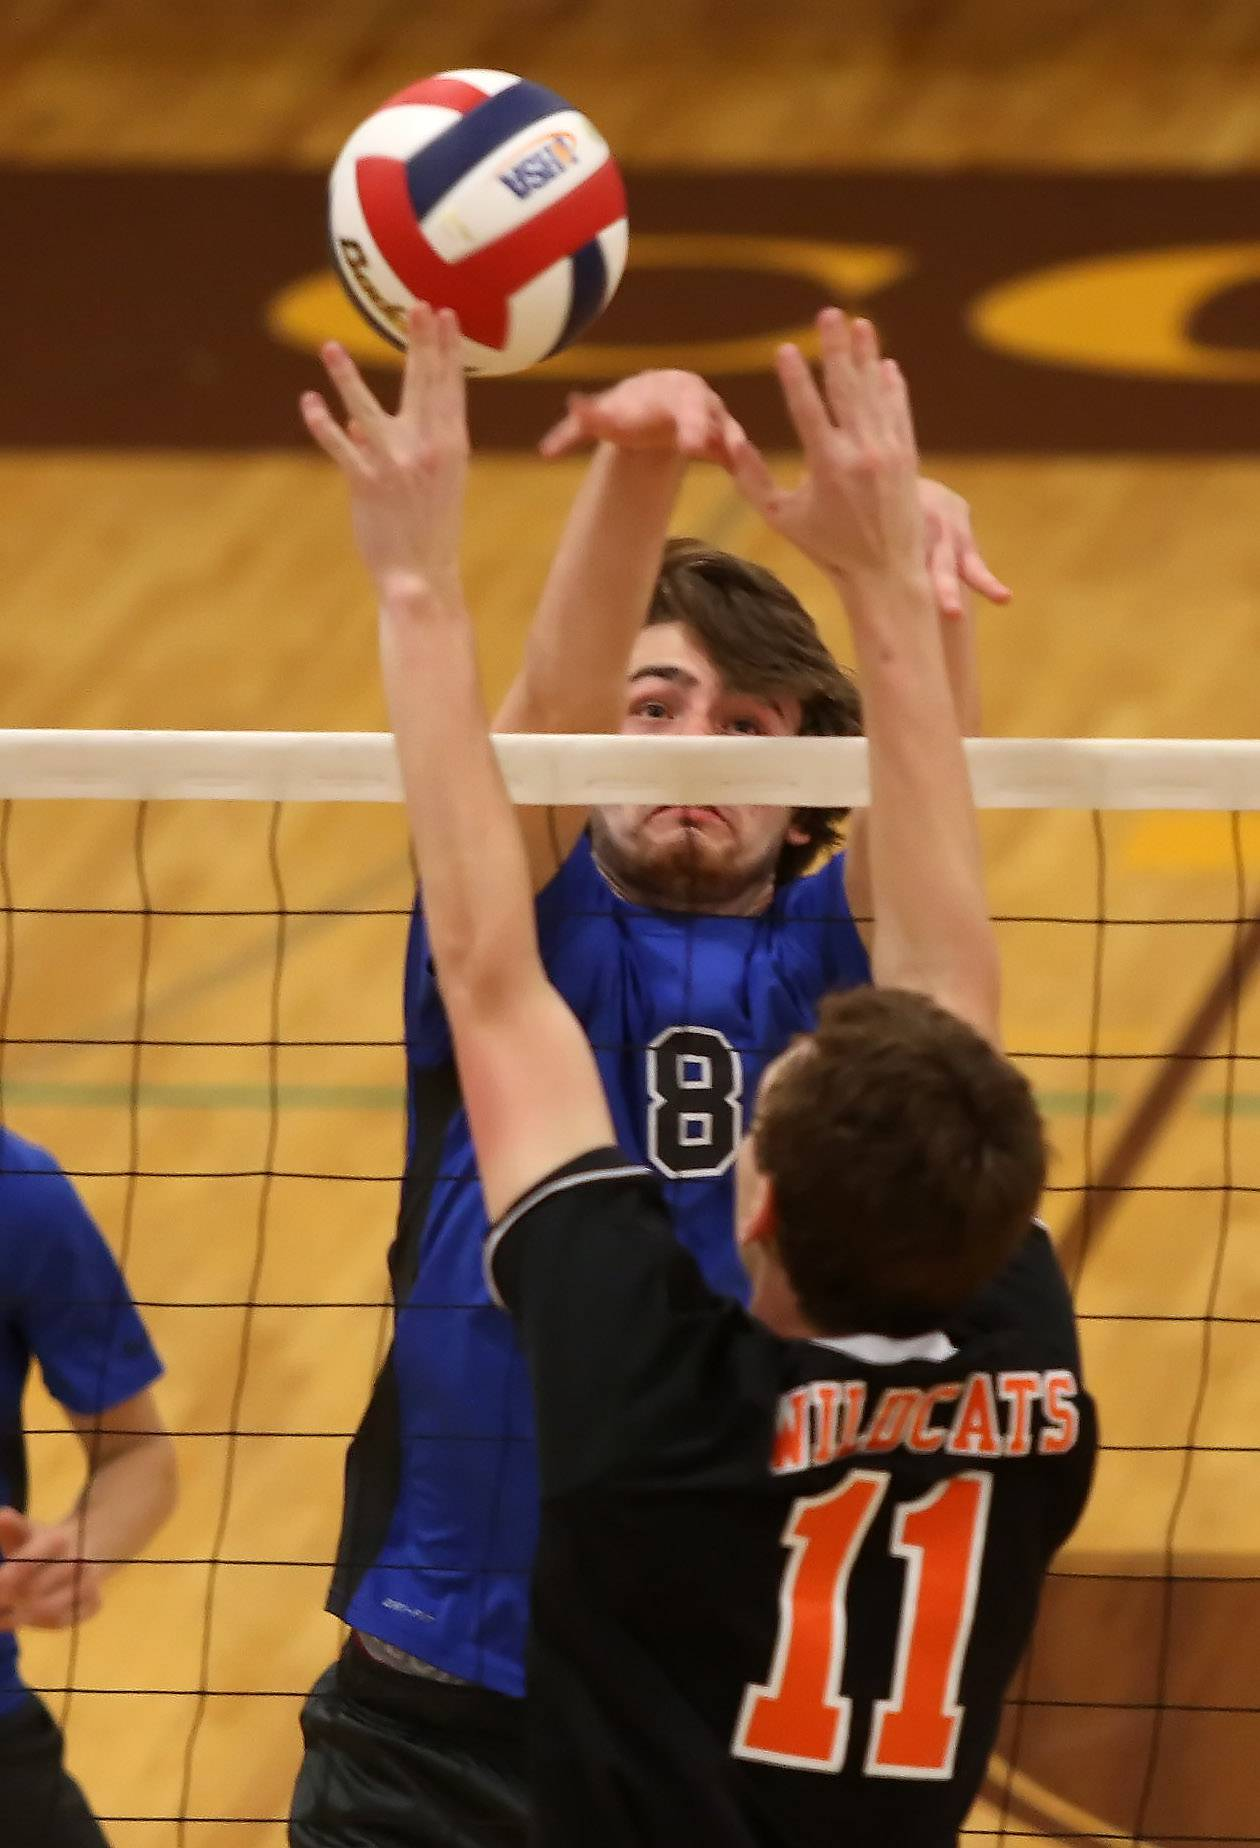 Vernon Hills player Ryan Opitz battles for the ball against Libertyville player Zach Hauser during the boys volleyball game Tuesday between Libertyville and Vernon Hills at Carmel High School in Mundelein.